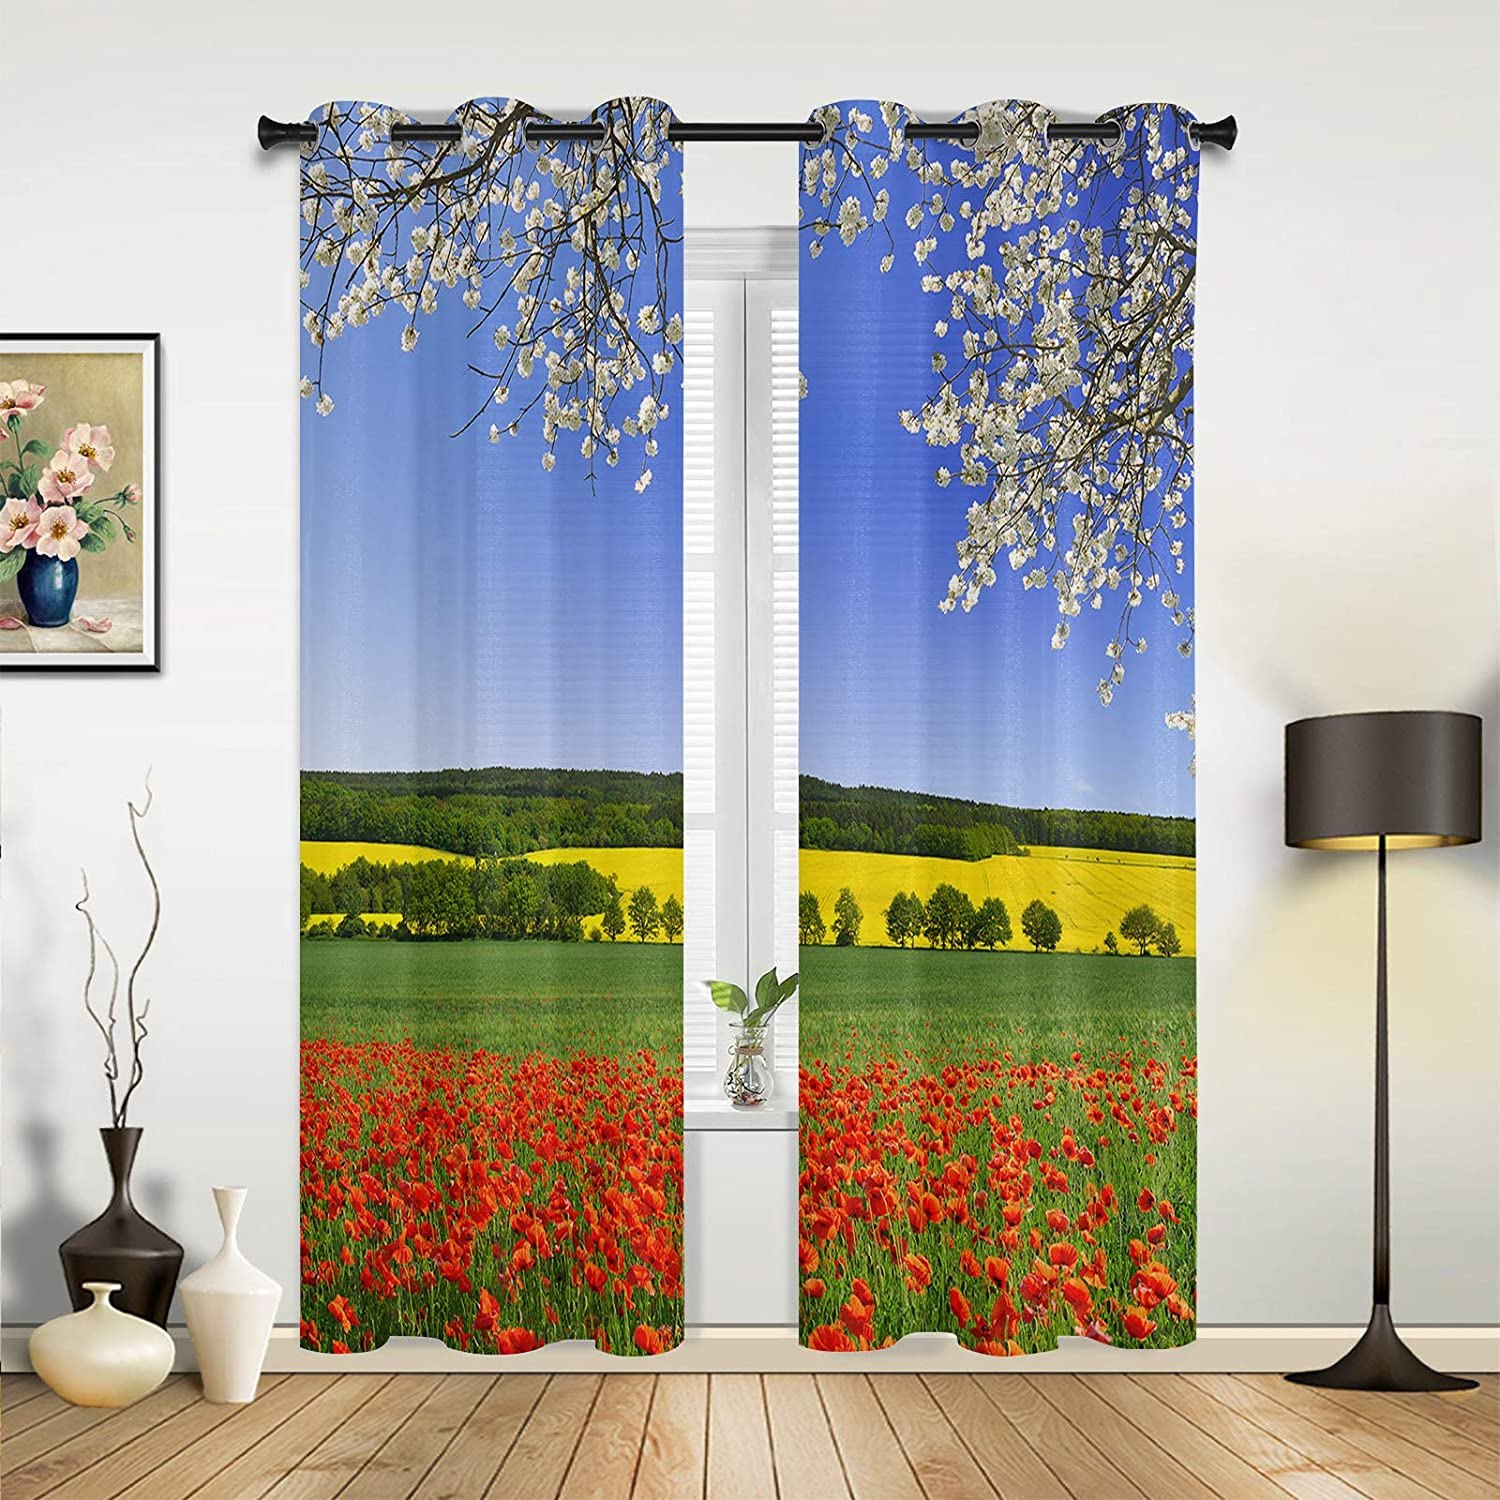 Window Curtains Max 65% OFF Drapes Panels Spring Field Cherry Outlet SALE Scarl Blossoms